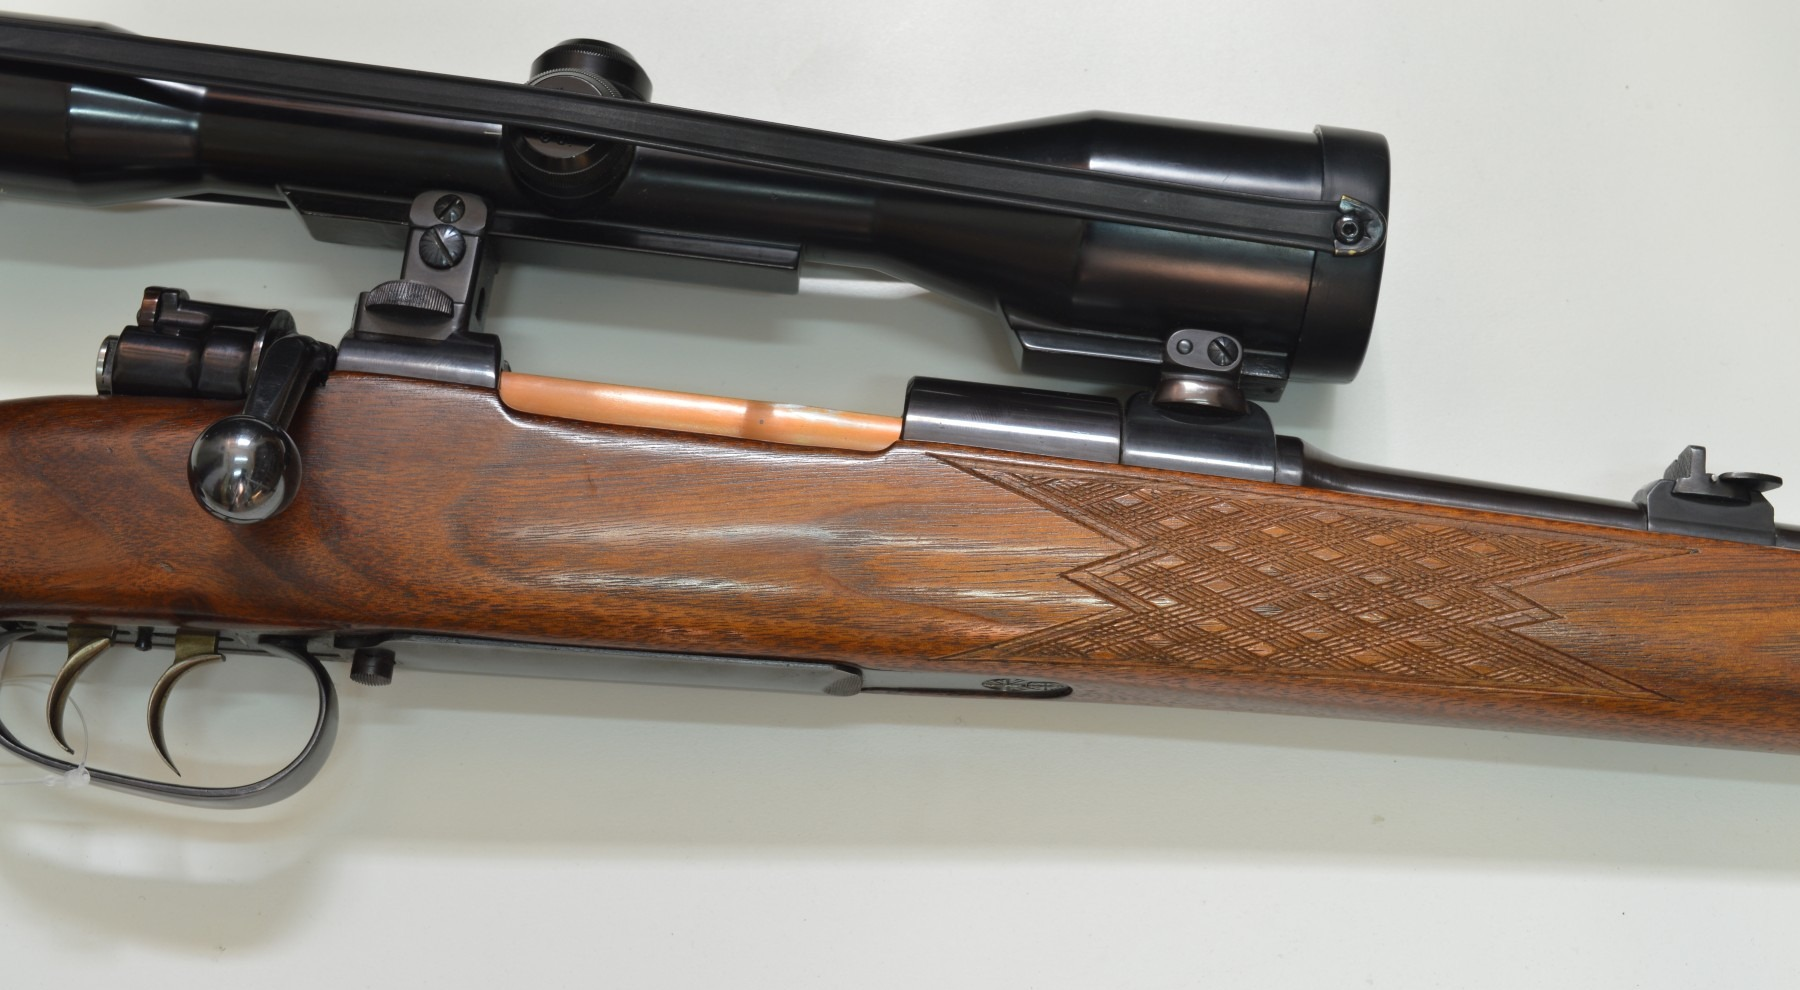 Mauser M98 sporting rifle 7x66SE